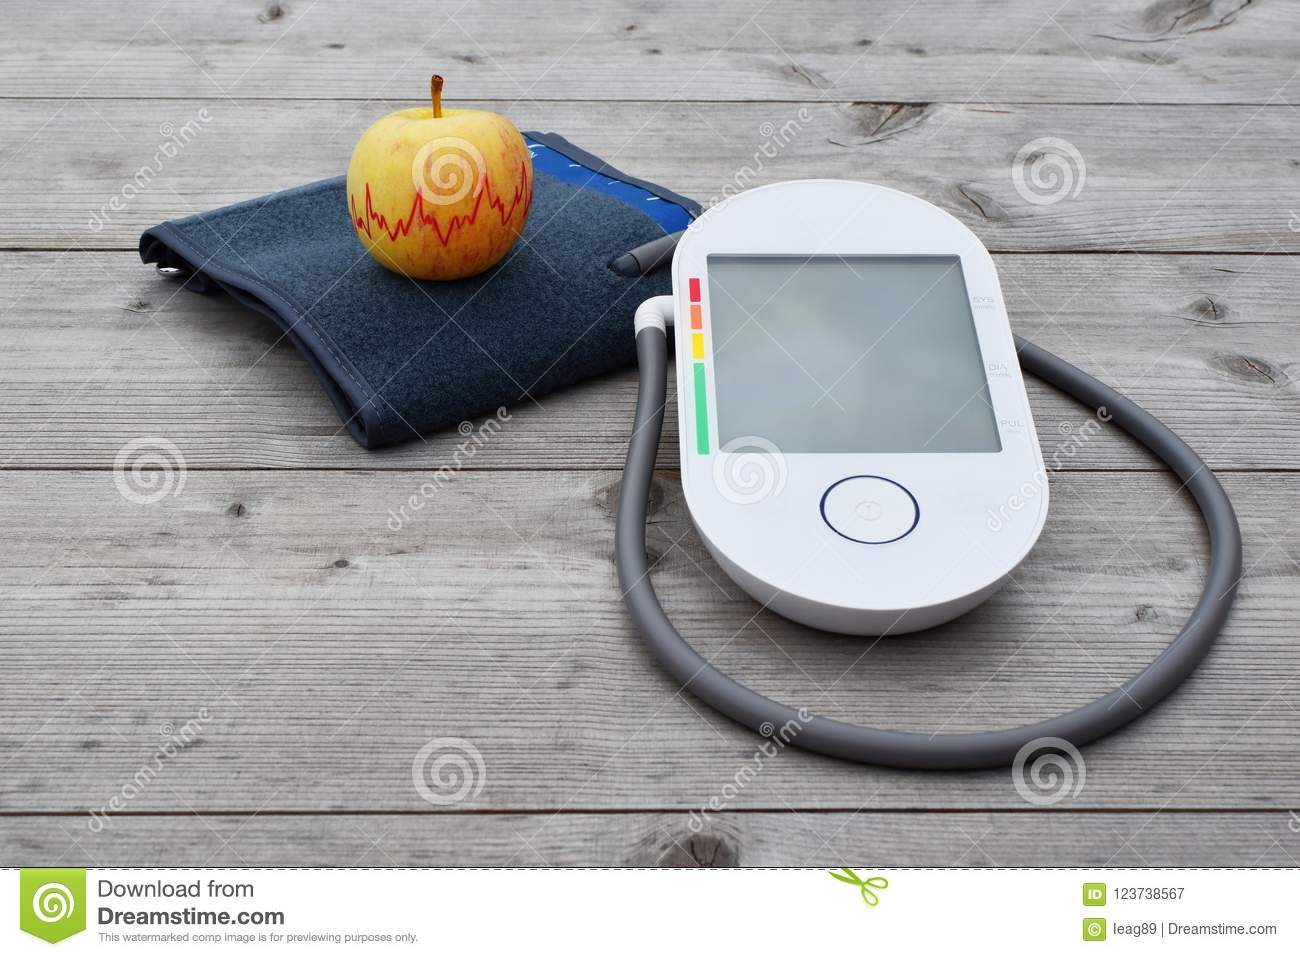 Blood pressure measuring device and apple